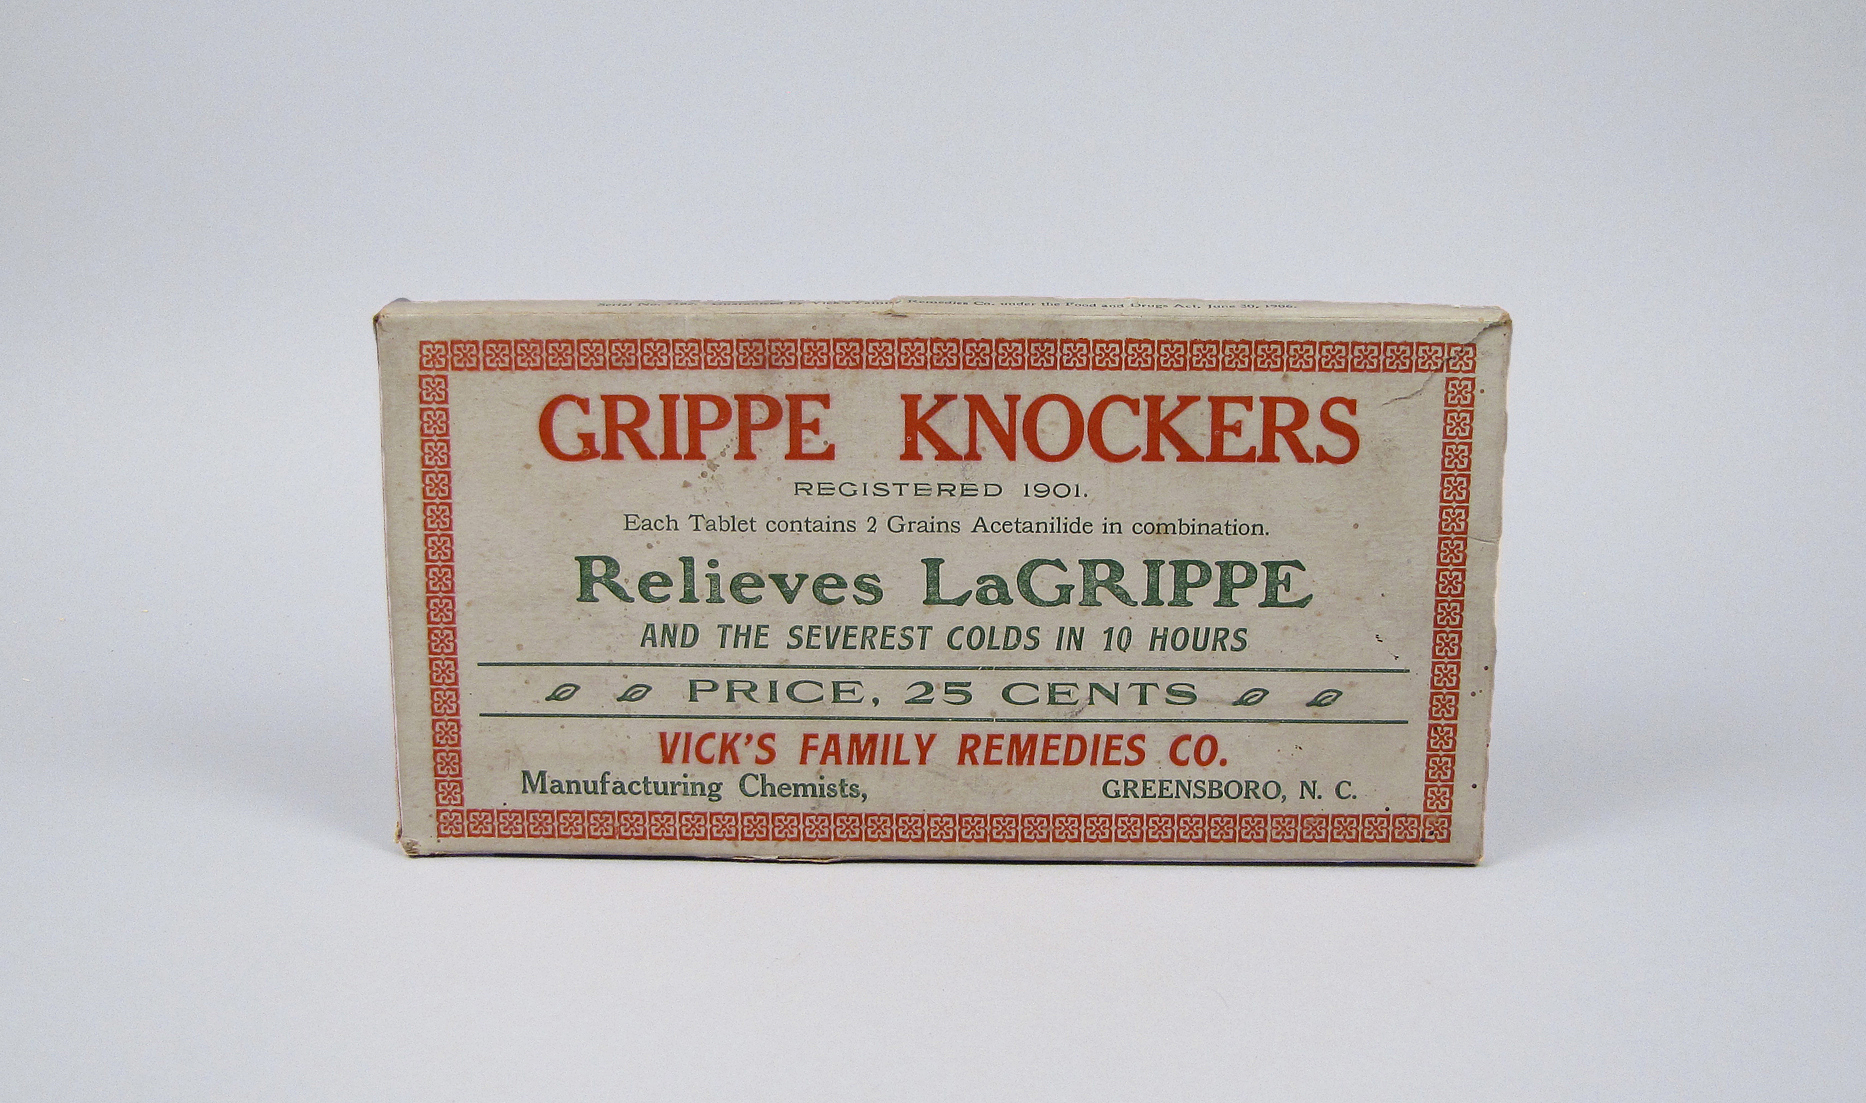 Grippe Knockers, Vick's Family Remedies Company, ca 1908-1918.